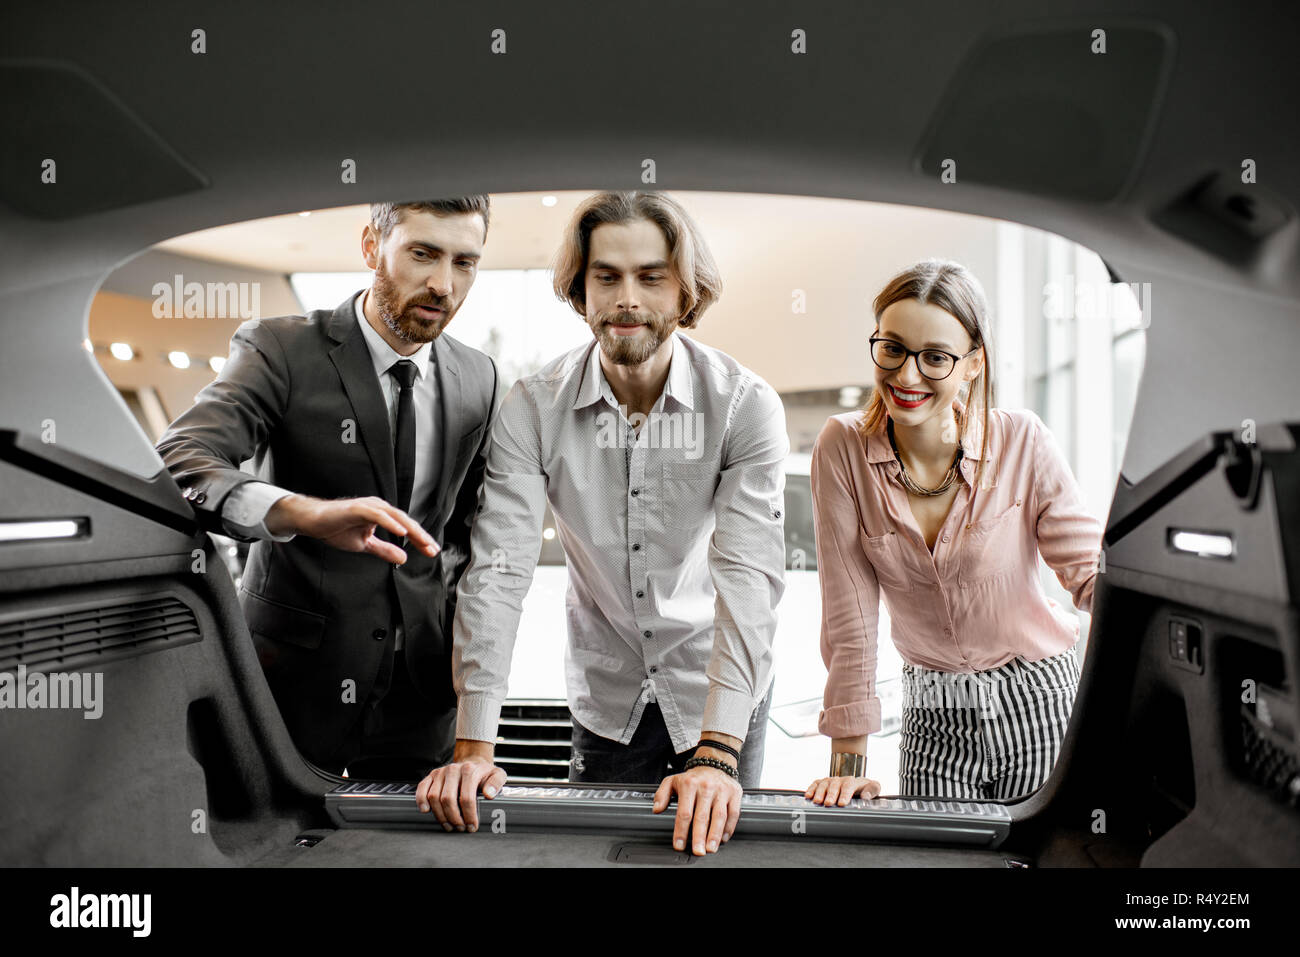 Salesman showing spacious trunk of a new car for a young couple clients in the showroom - Stock Image